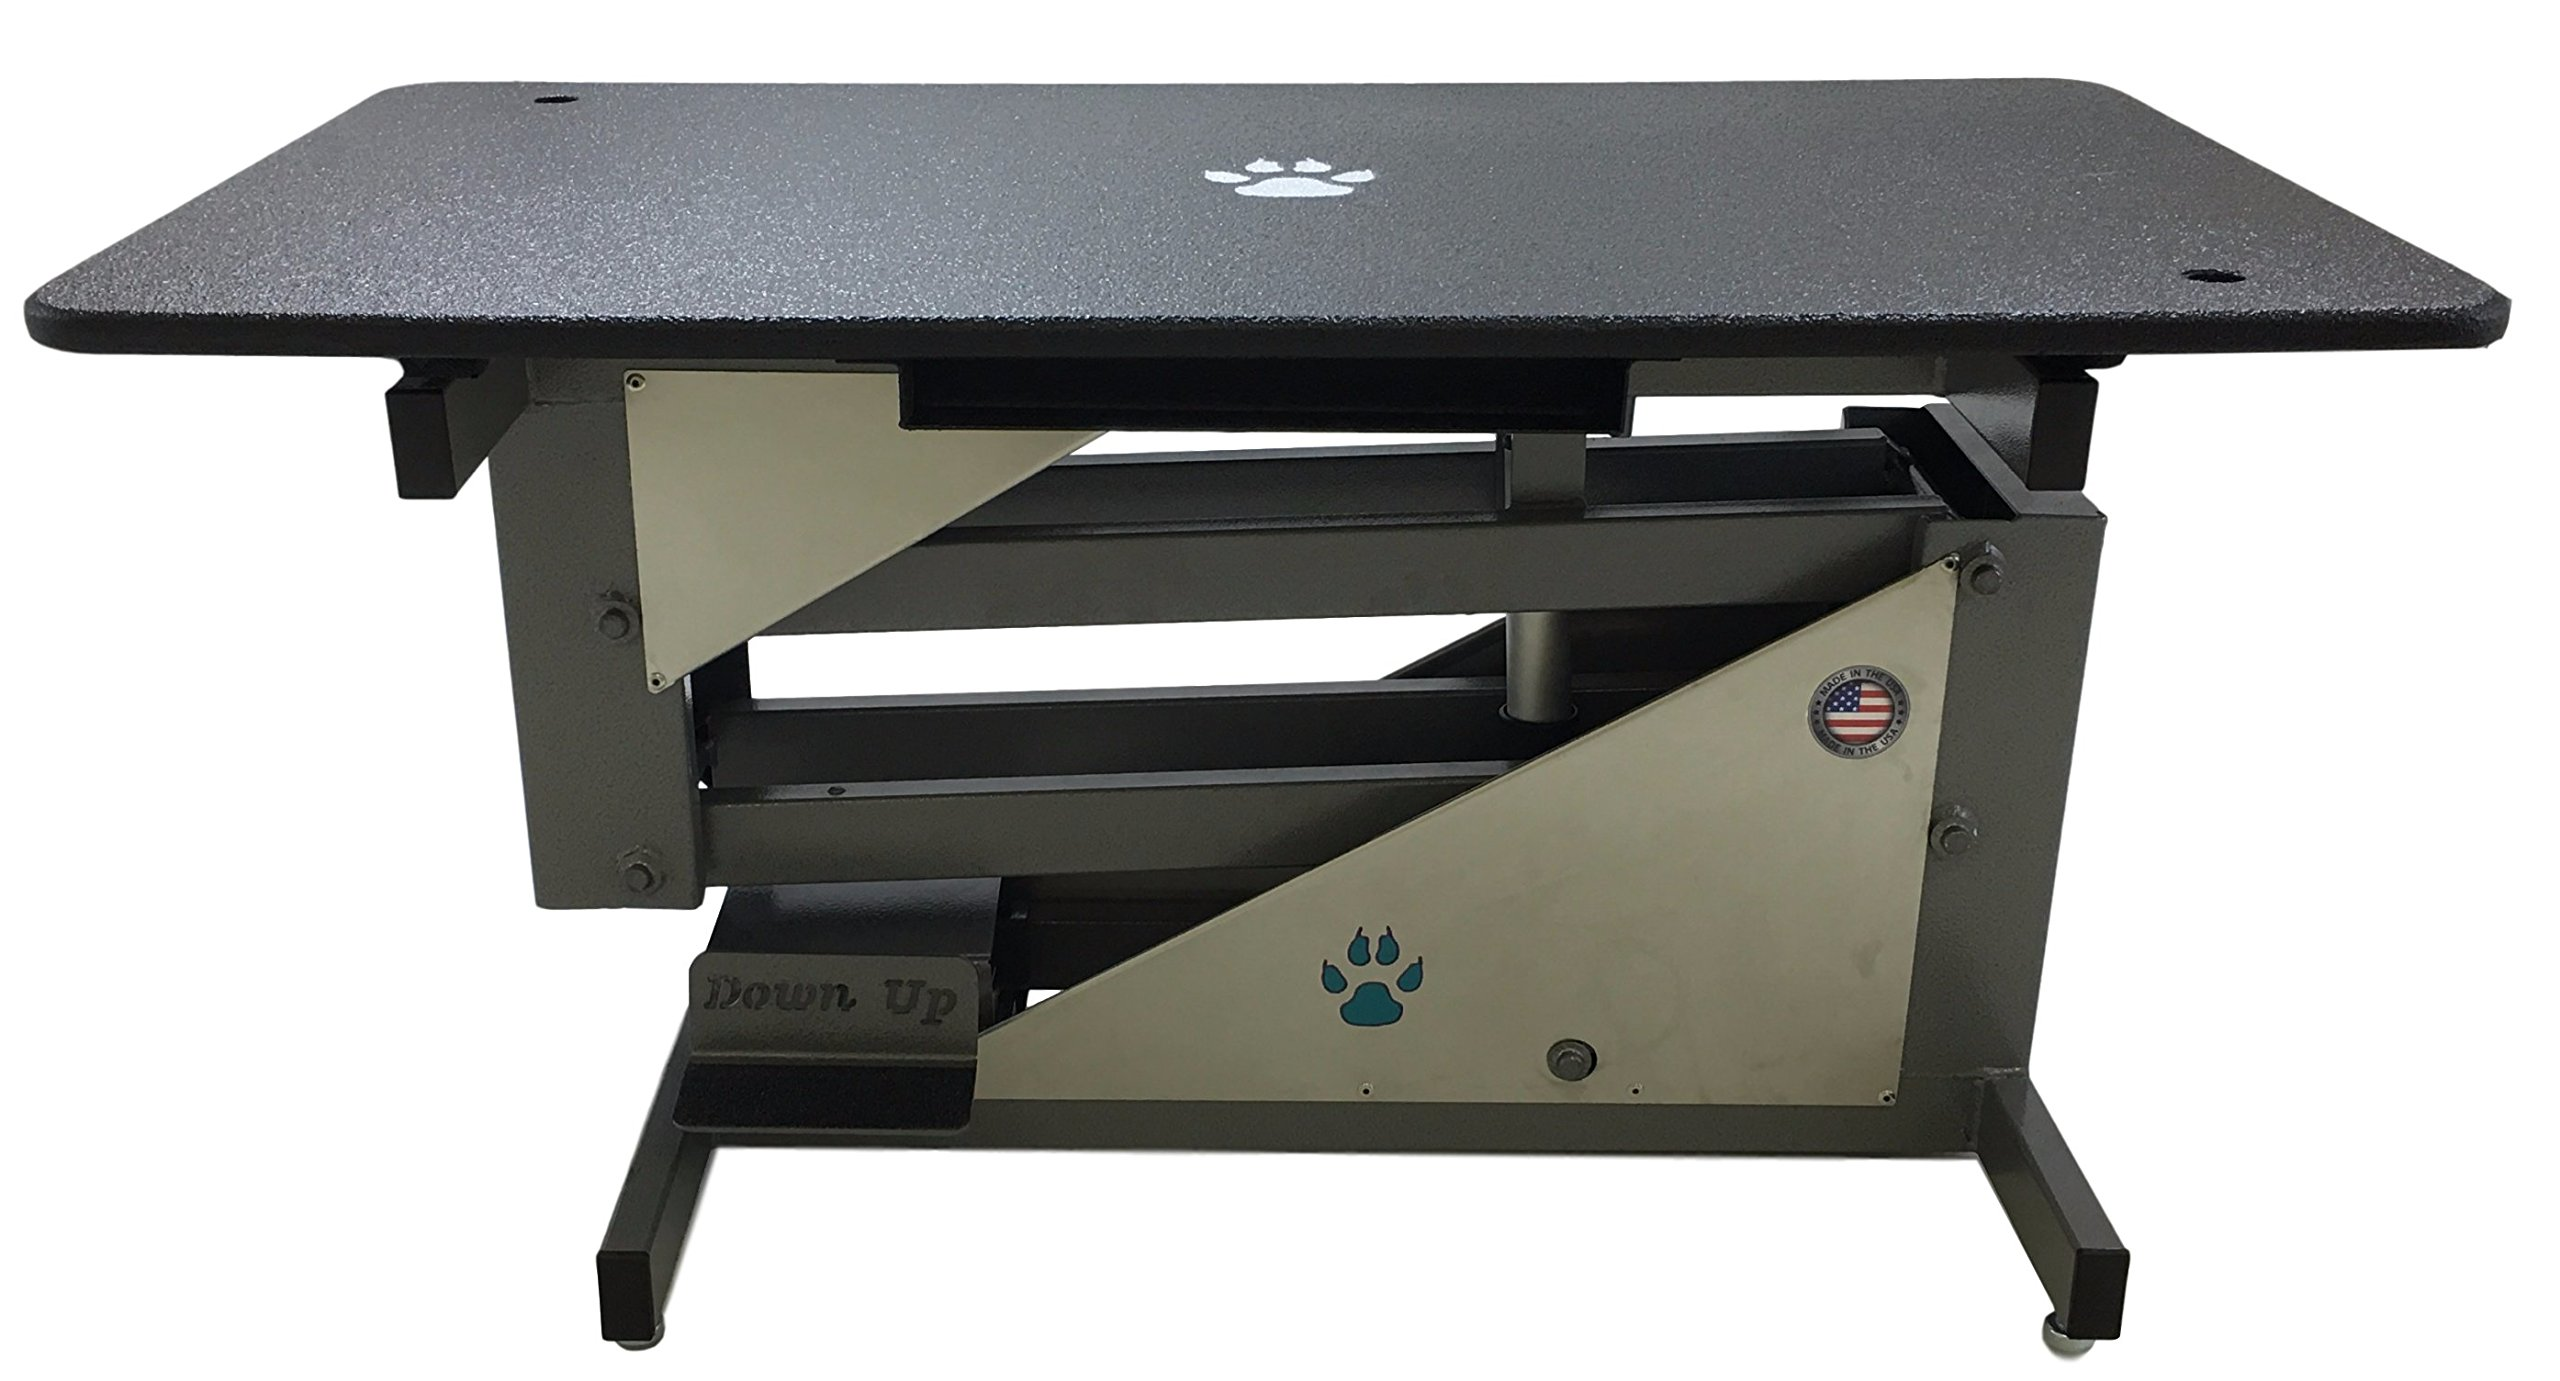 Groomer's Best Electric Grooming Table for Pets, 24 by 42-Inch by Groomer's Best (Image #3)